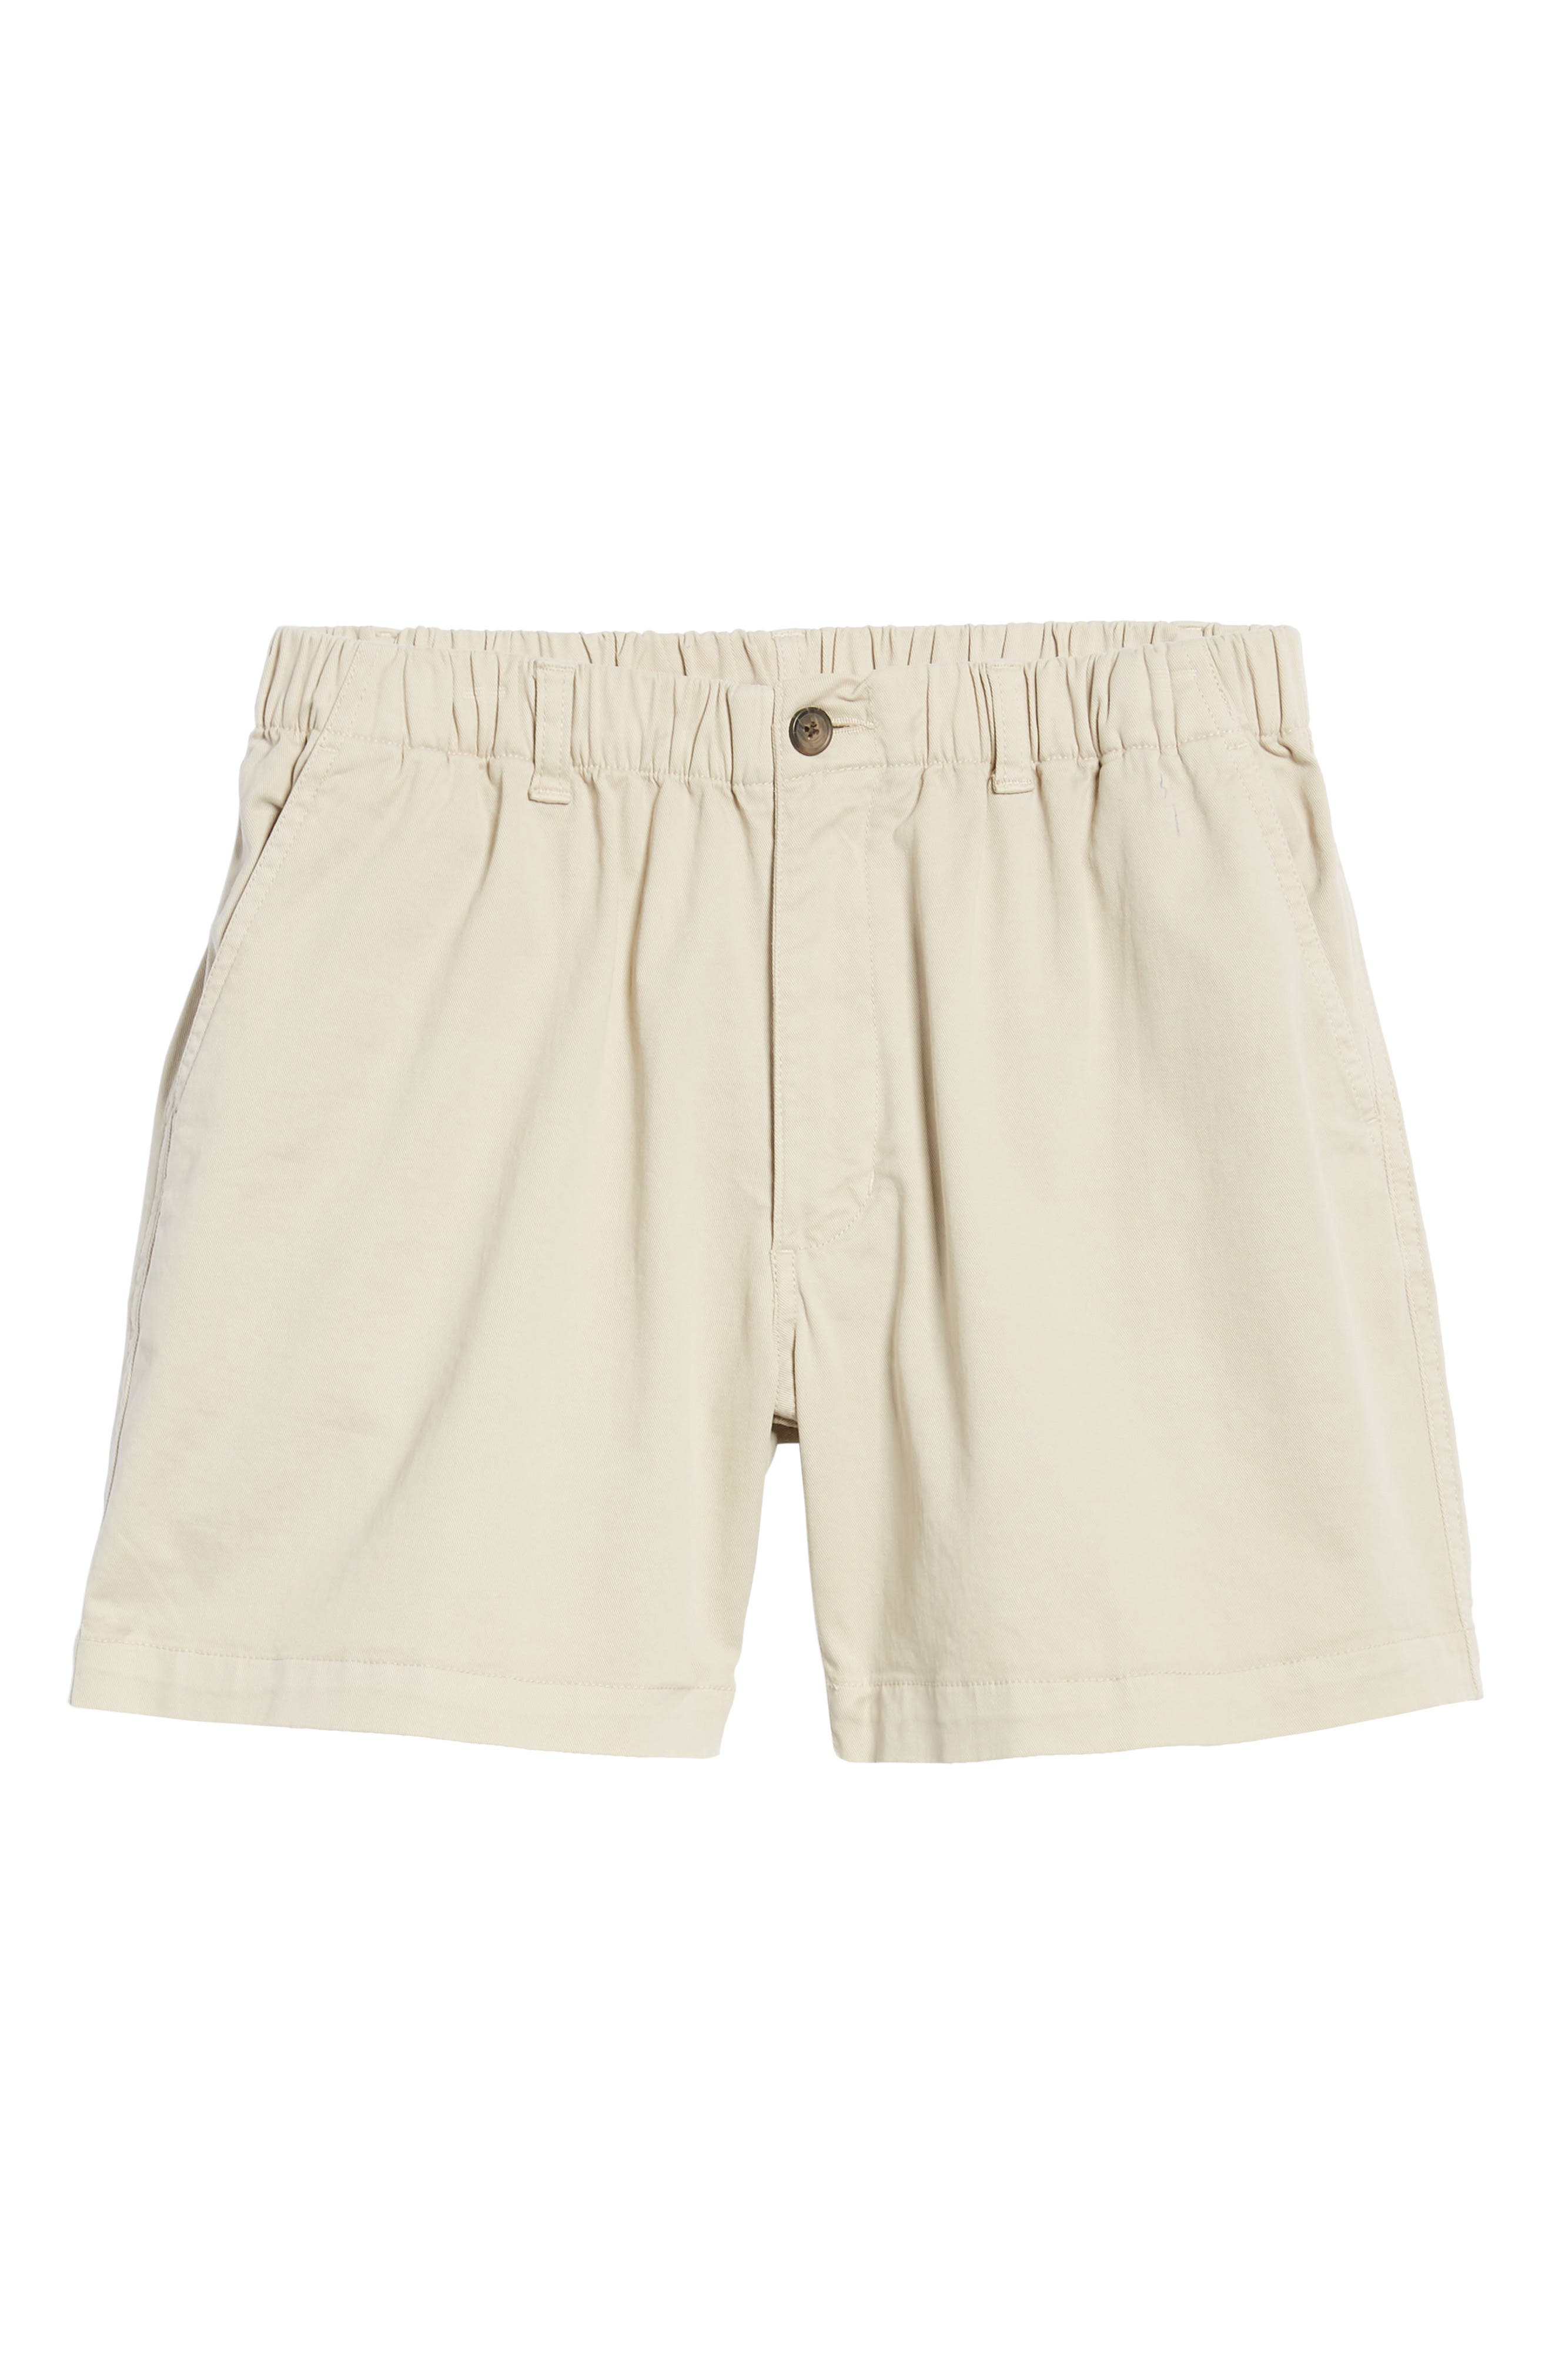 Snappers Elastic Waist 5.5 Inch Stretch Shorts,                             Alternate thumbnail 6, color,                             STONE